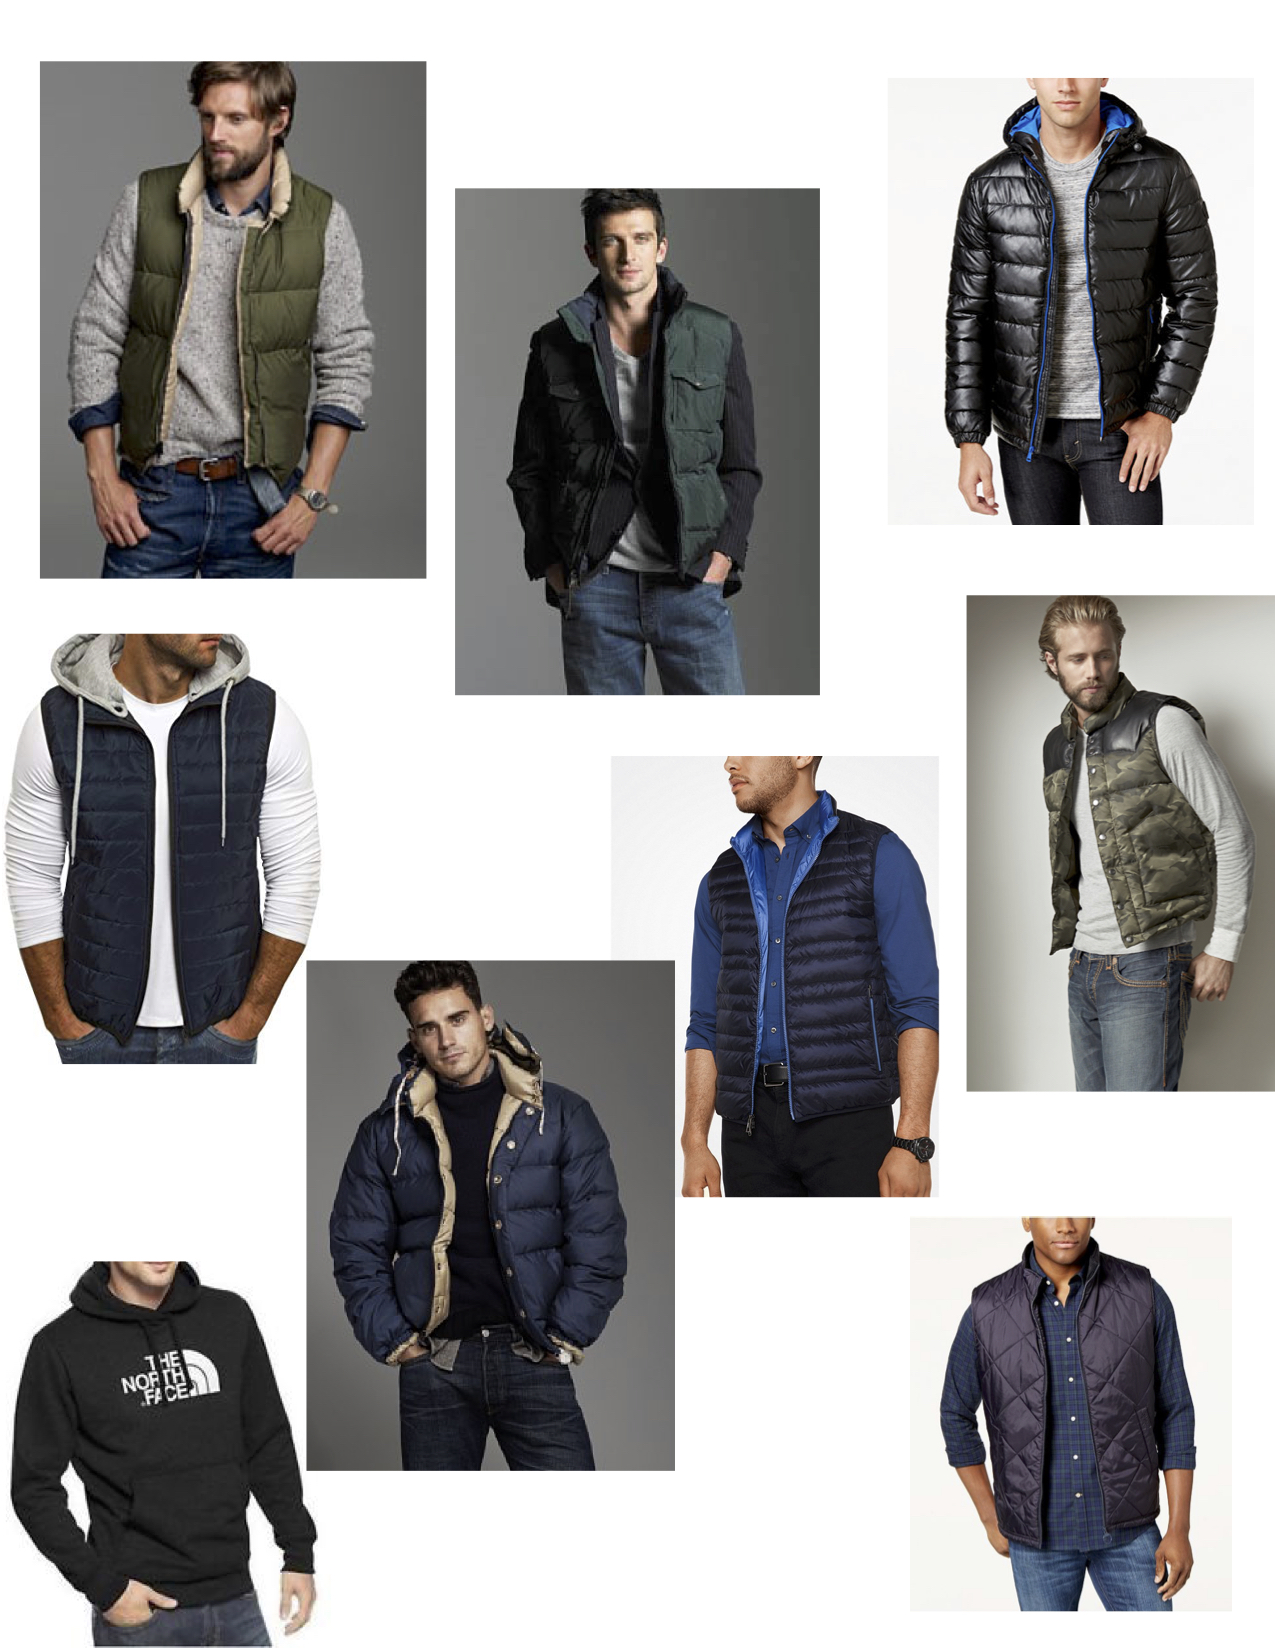 ecomm outerewear men's web.jpg